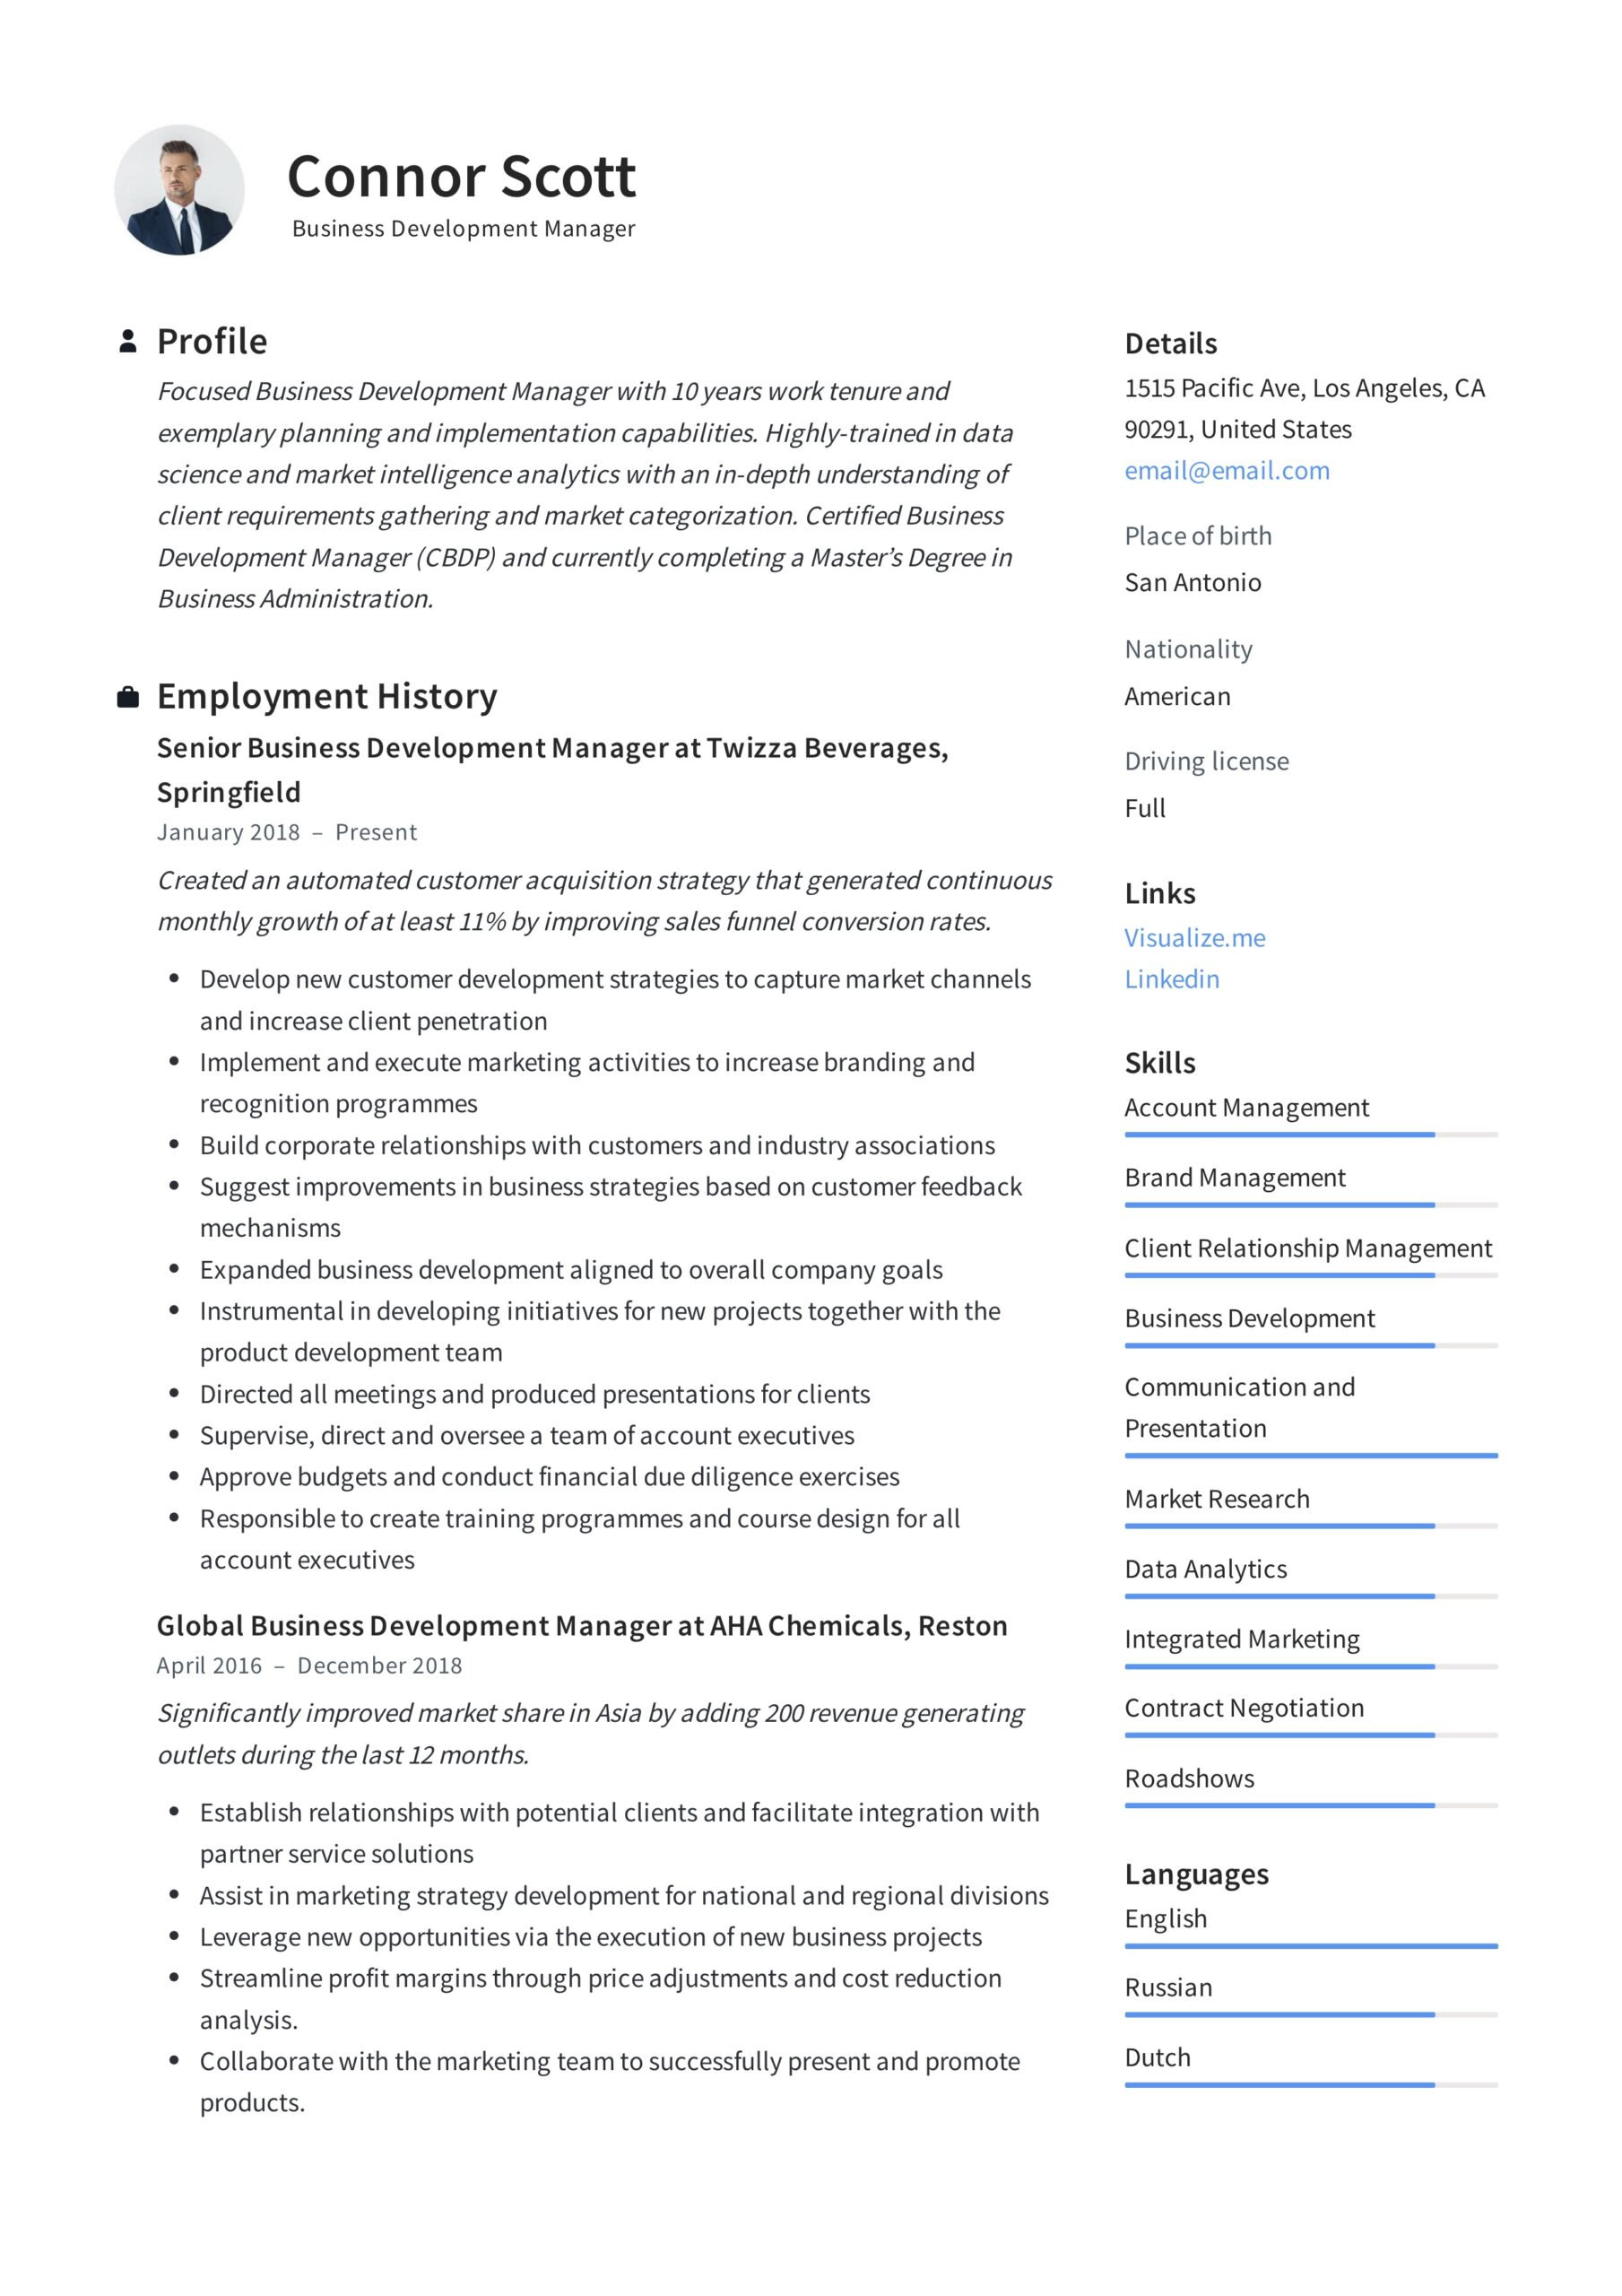 business development manager resume guide templates pdf for pharmaceutical research and Resume Resume For Pharmaceutical Research And Development